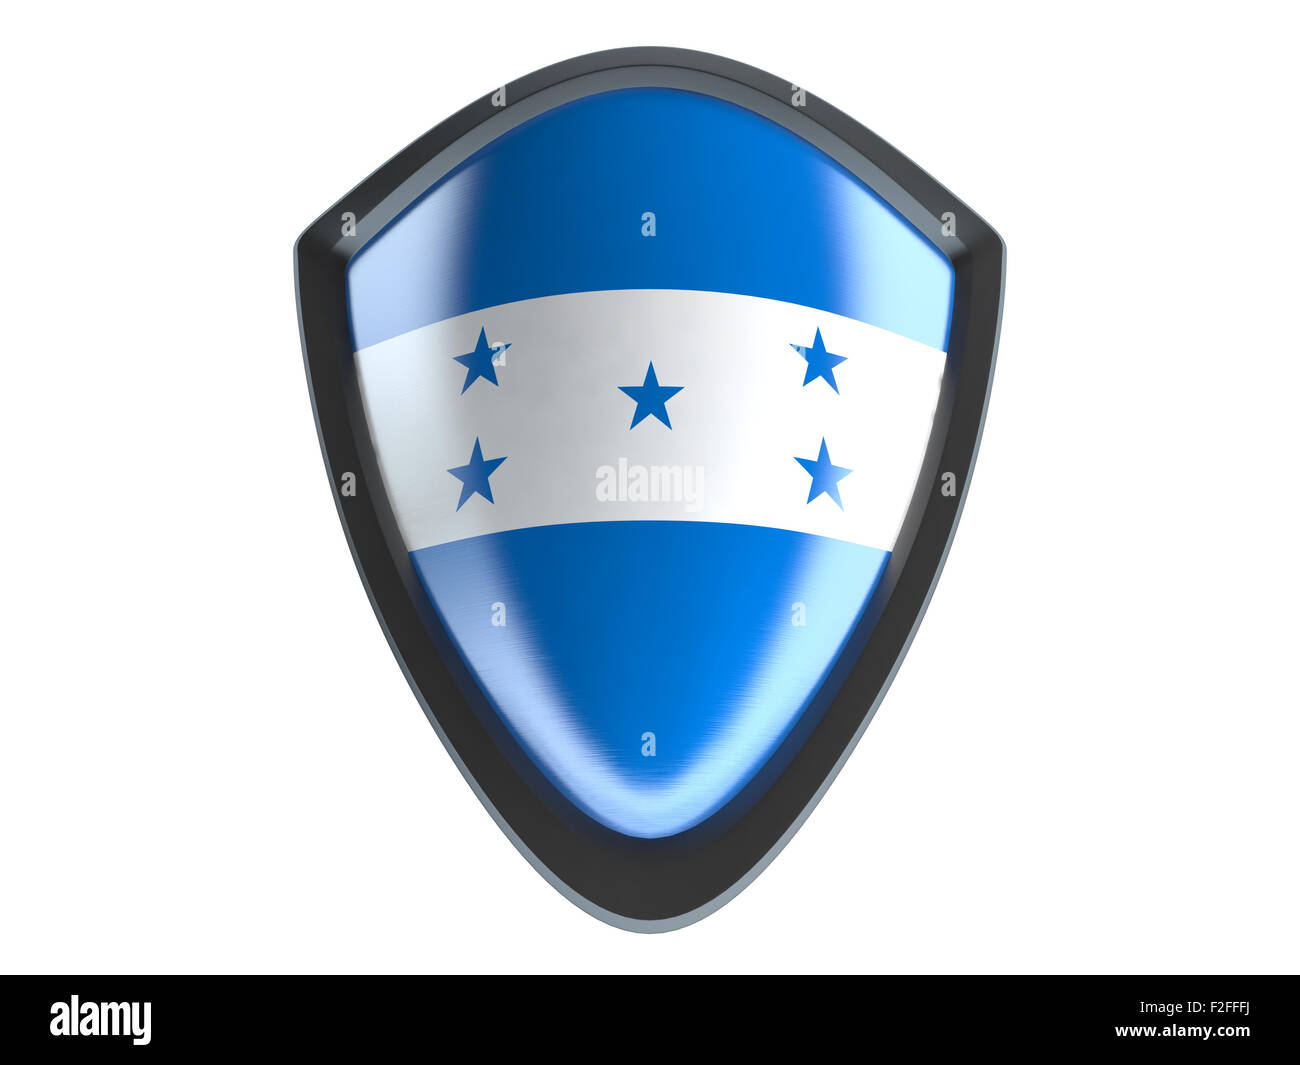 Honduras flag on metal shield isolate on white background. Stock Photo